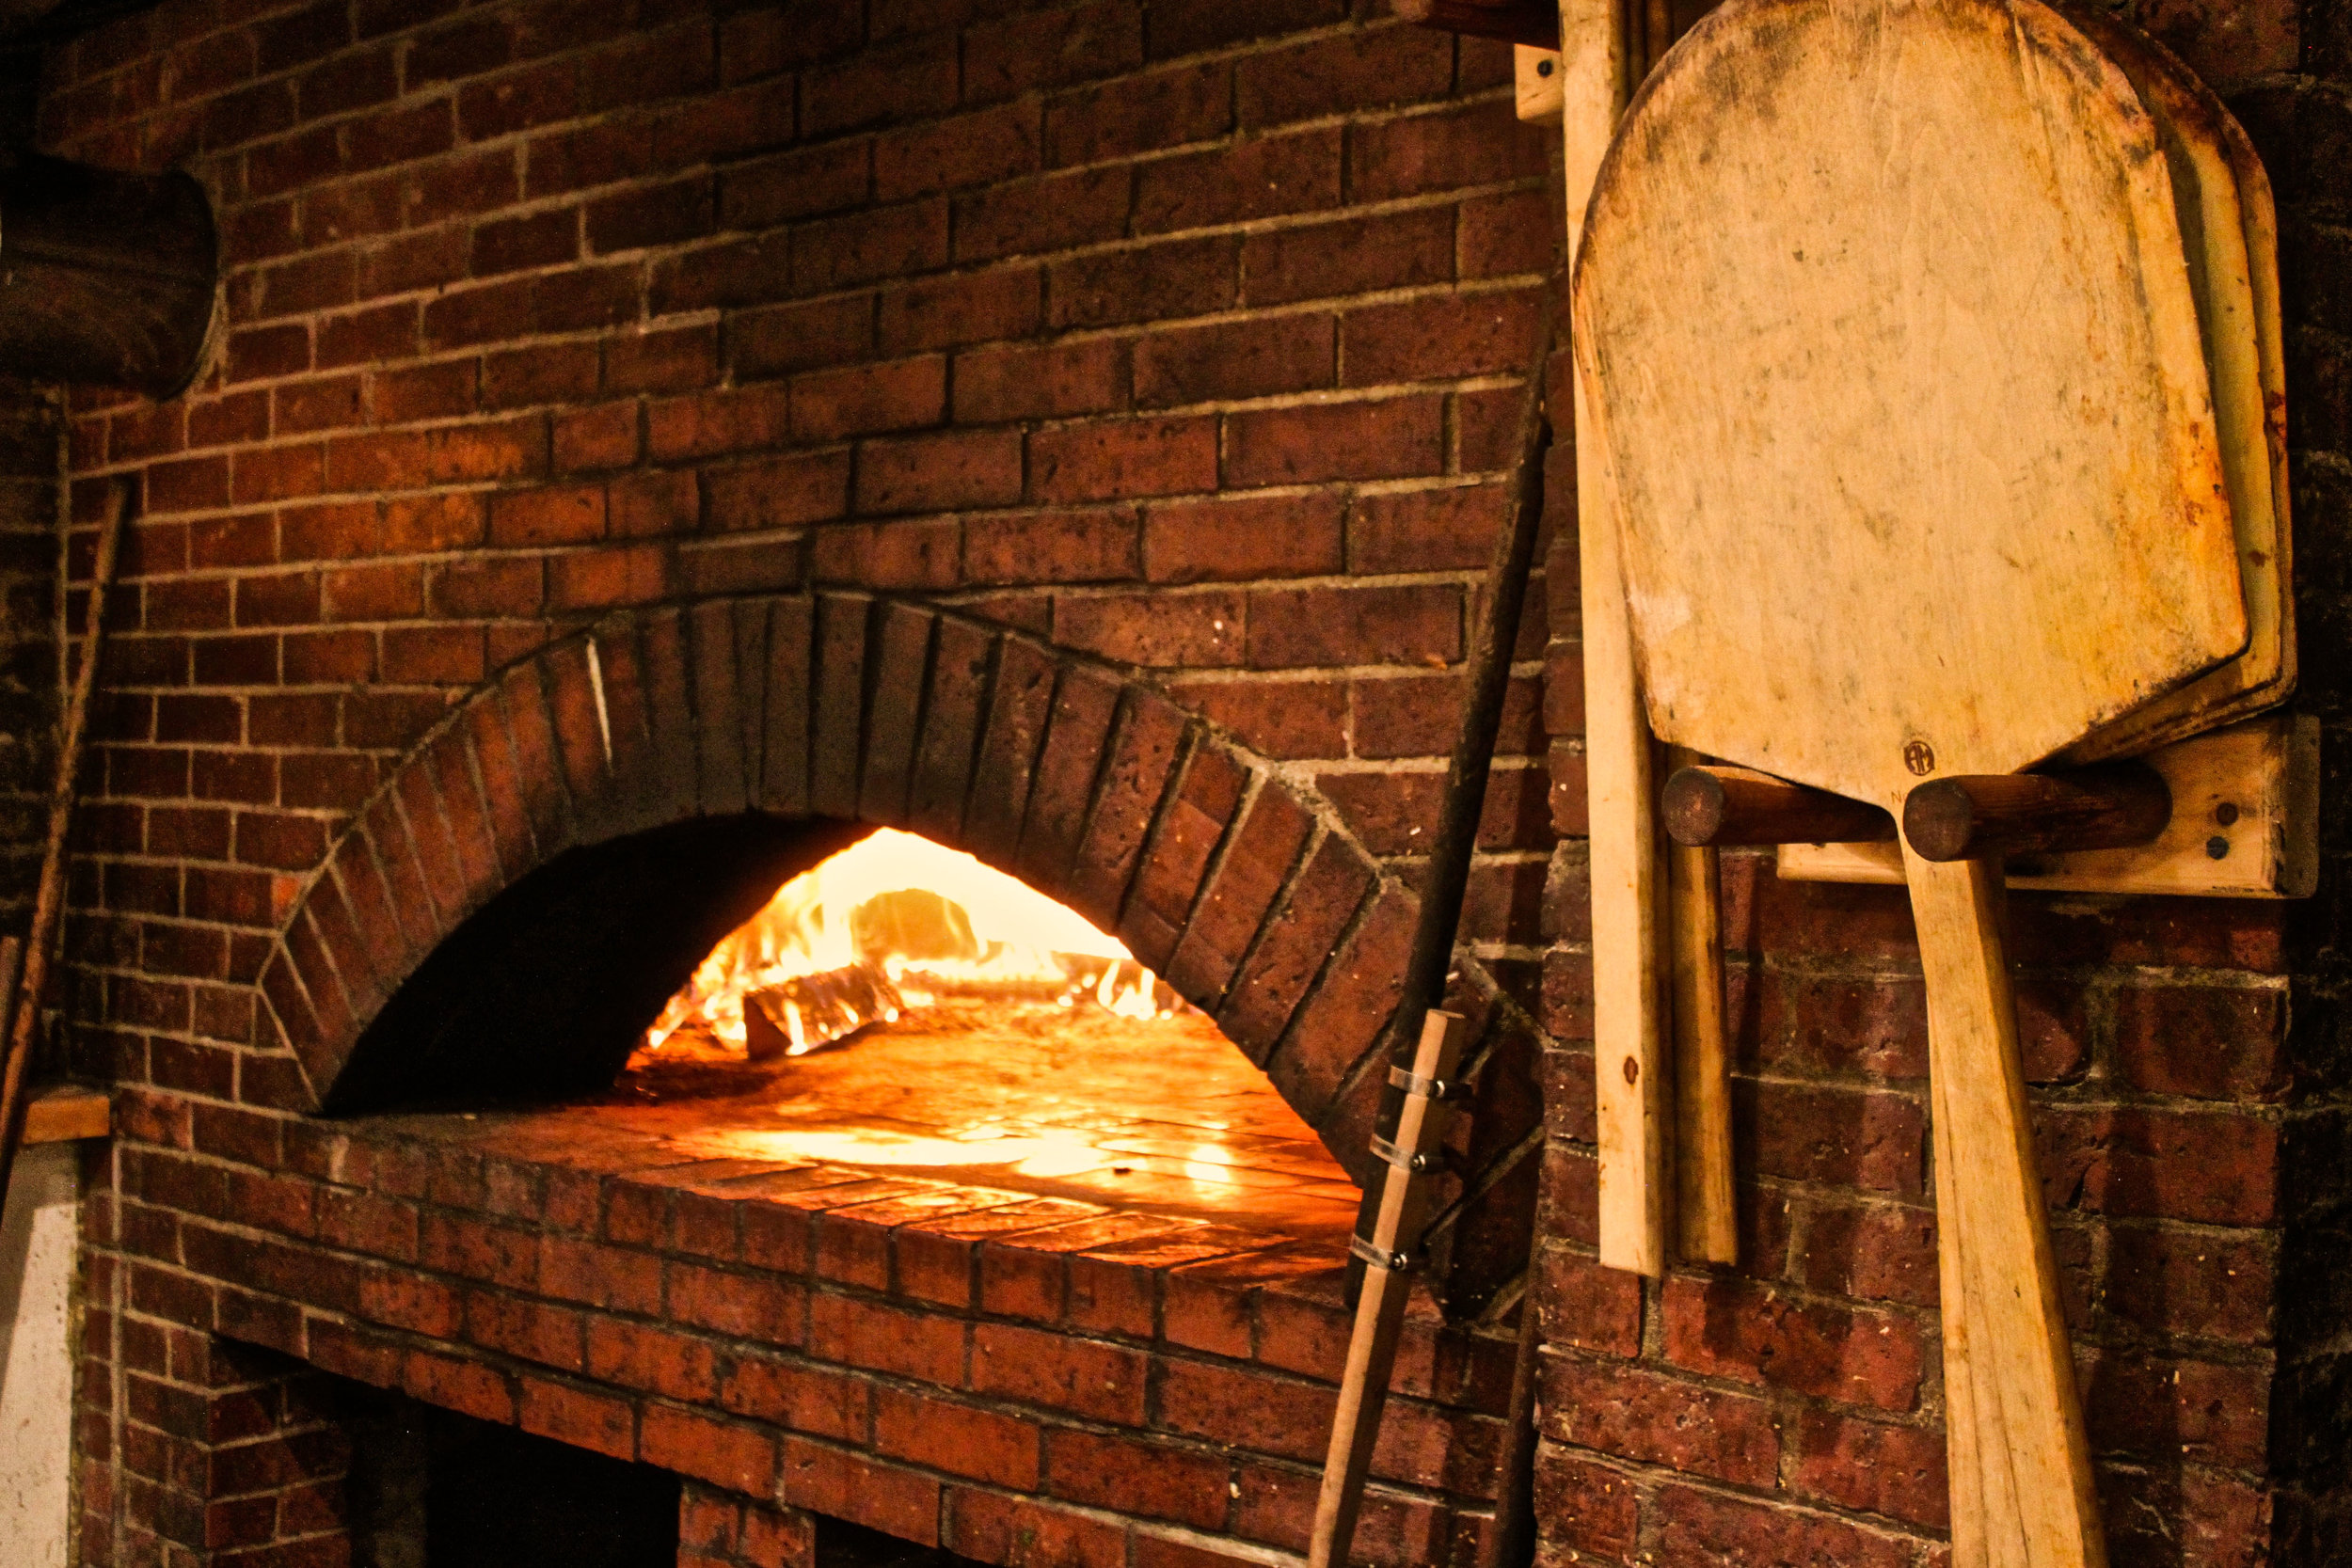 The famous brick oven behind the Pizza Pub's award-winning pizza